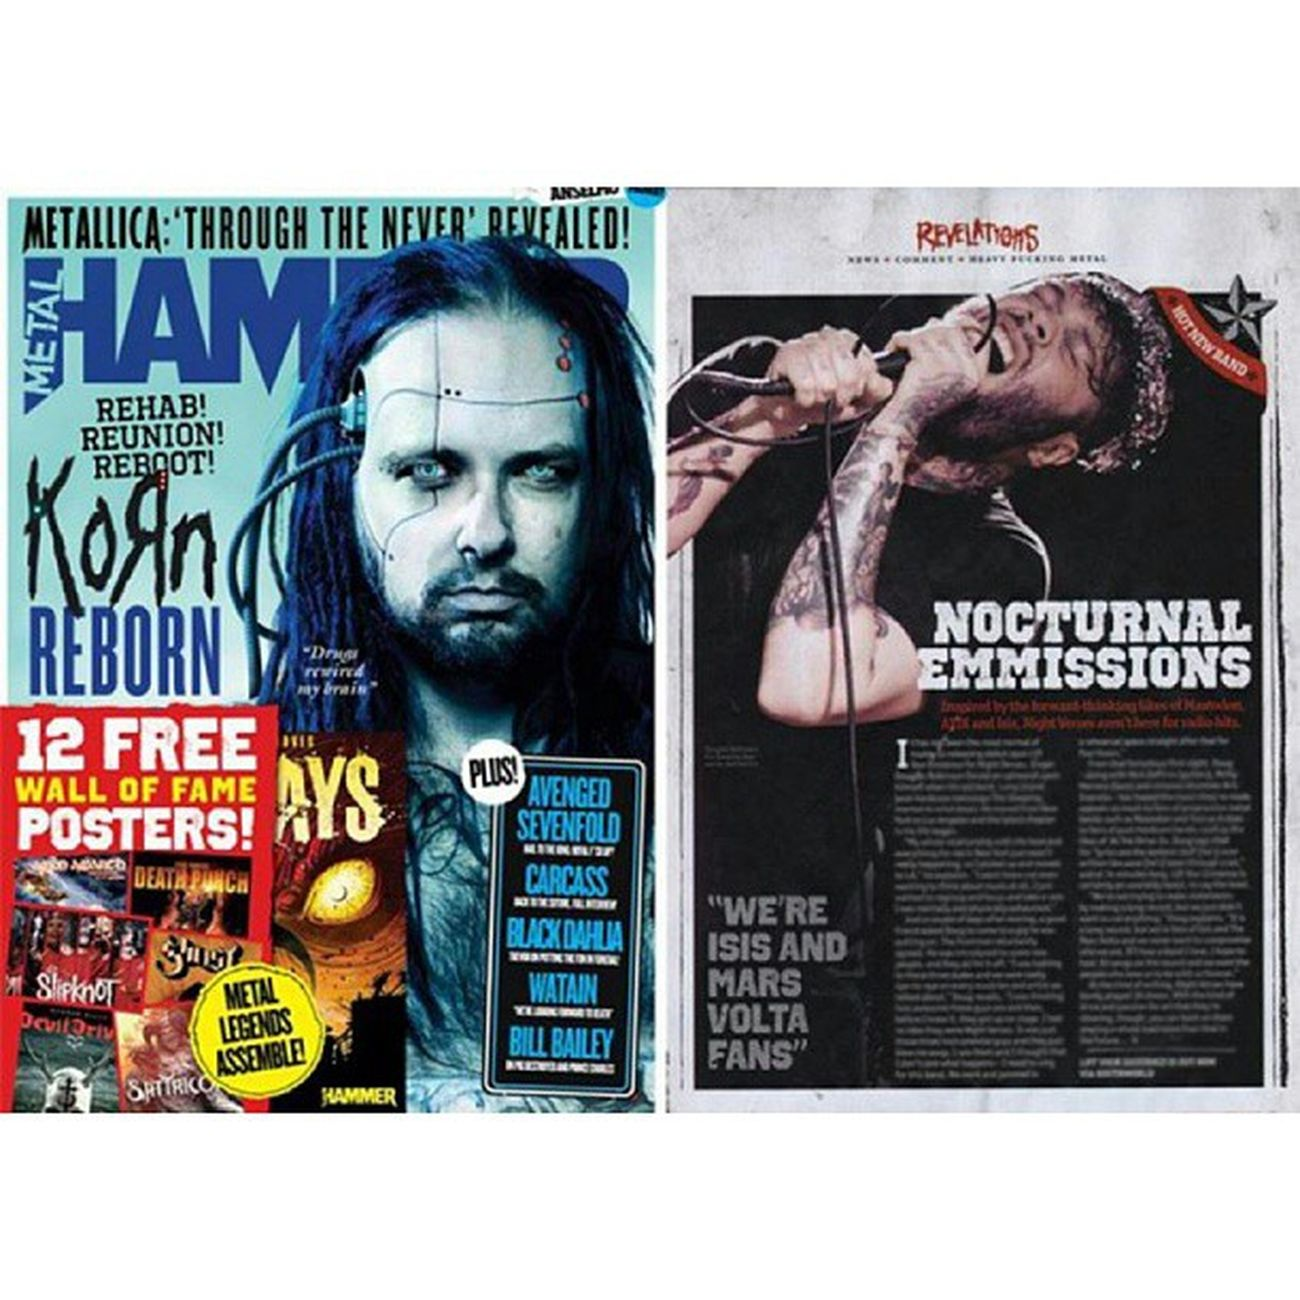 My shot on the right of Douglas from Night Verses printed on this month's MetalHammer Magazine. #metalhammer #magazine #douglas #nightverses #liveshot #singing #cool #instacool #printed #photo #concertphotographer #job #pudding #epphotography #microphone #tattoos #work